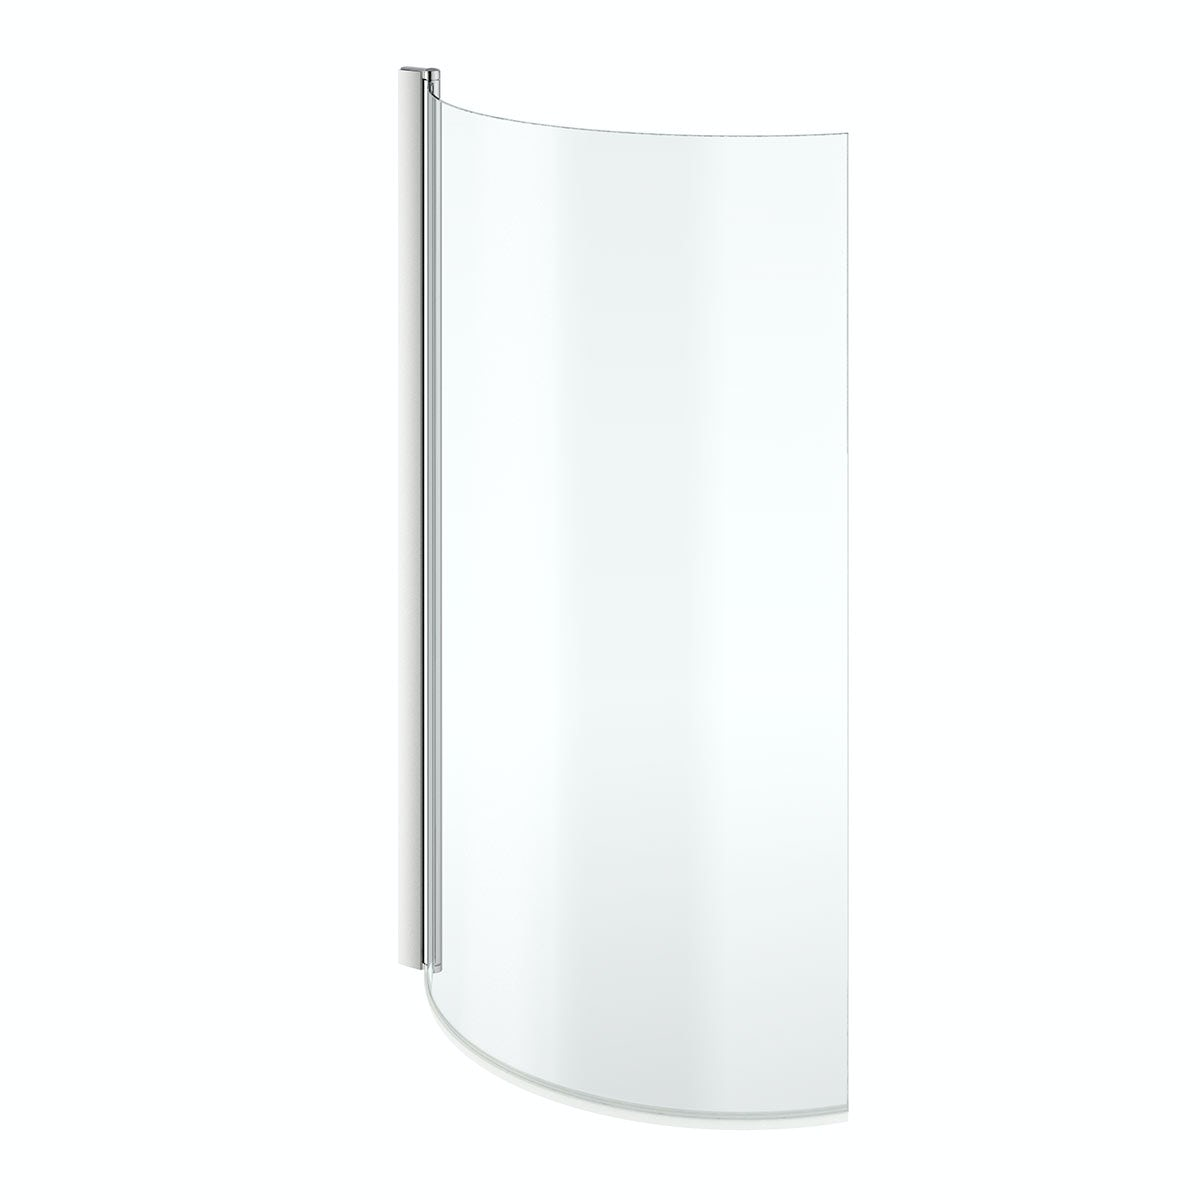 6mm curved shower bath screen for maine baths